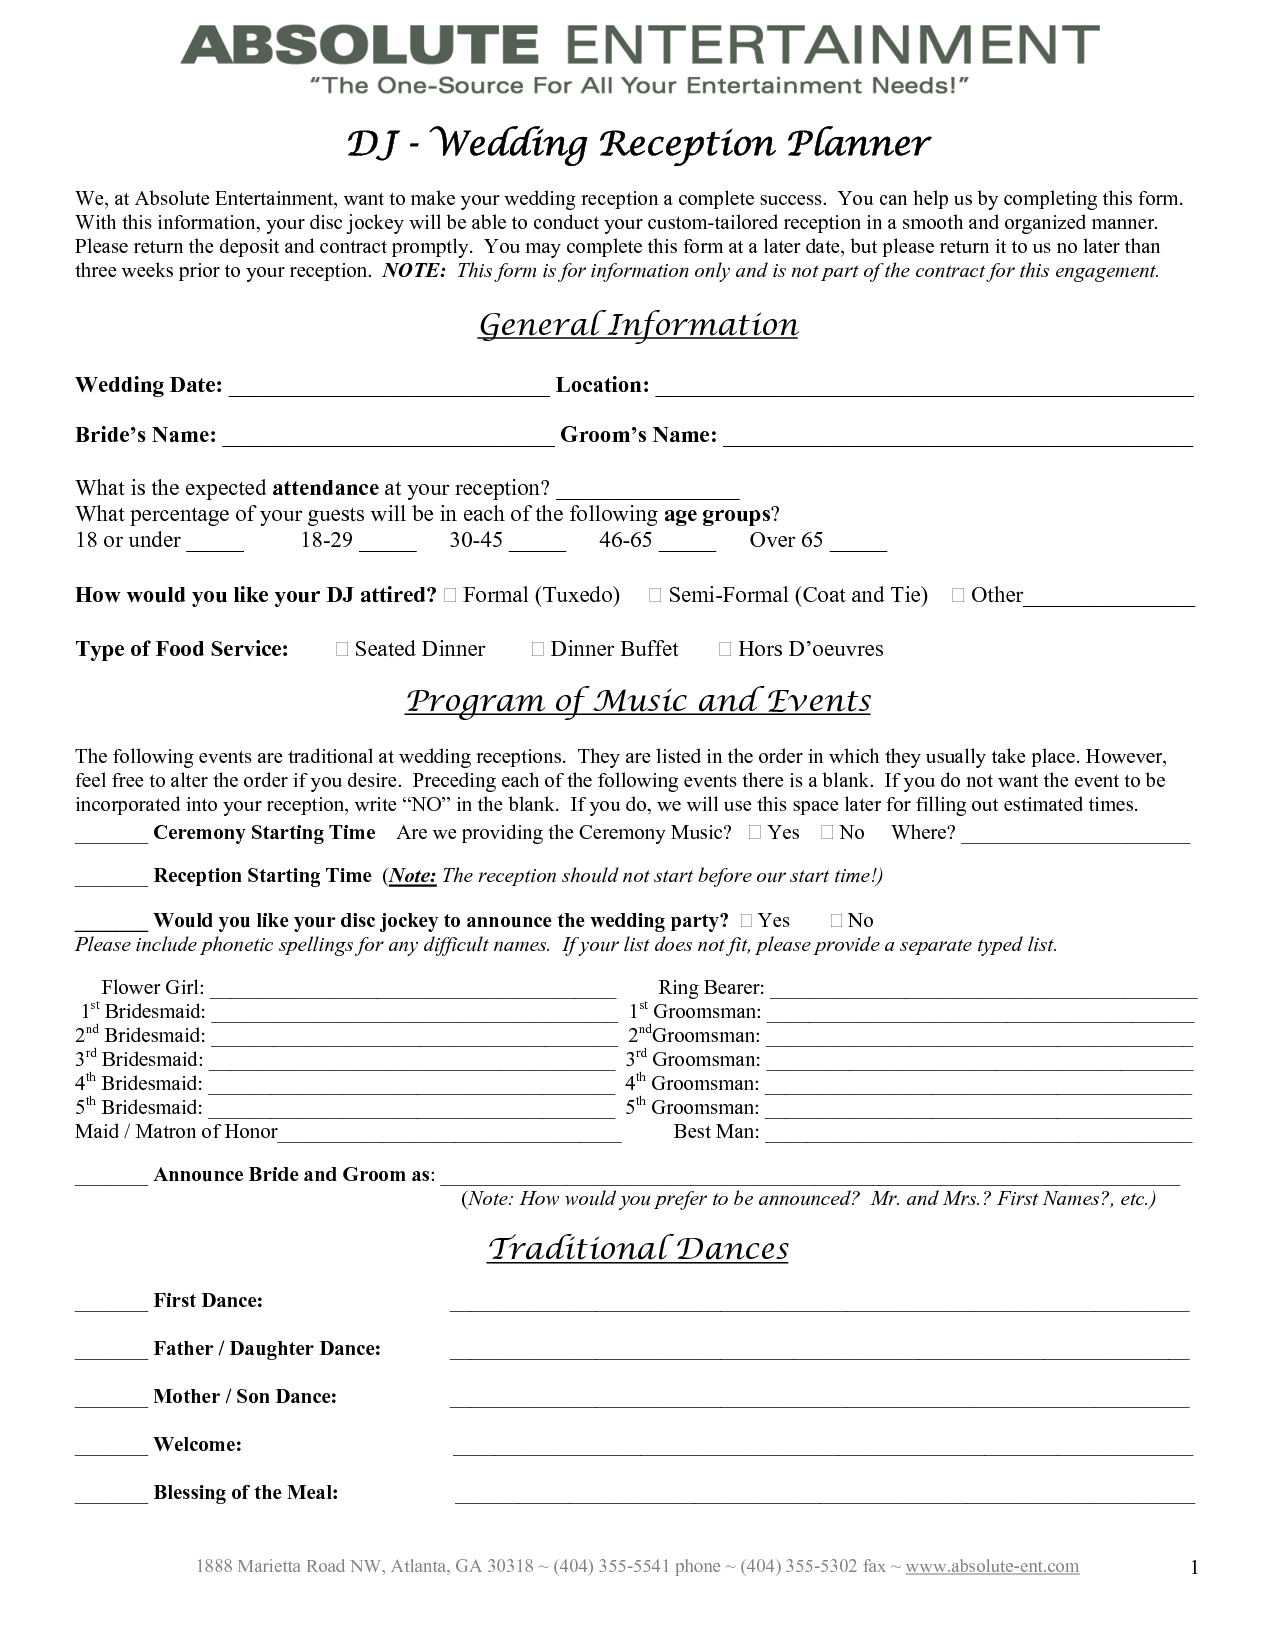 Wedding Planner Contract Template baby shower – Event Coordinator Contract Sample